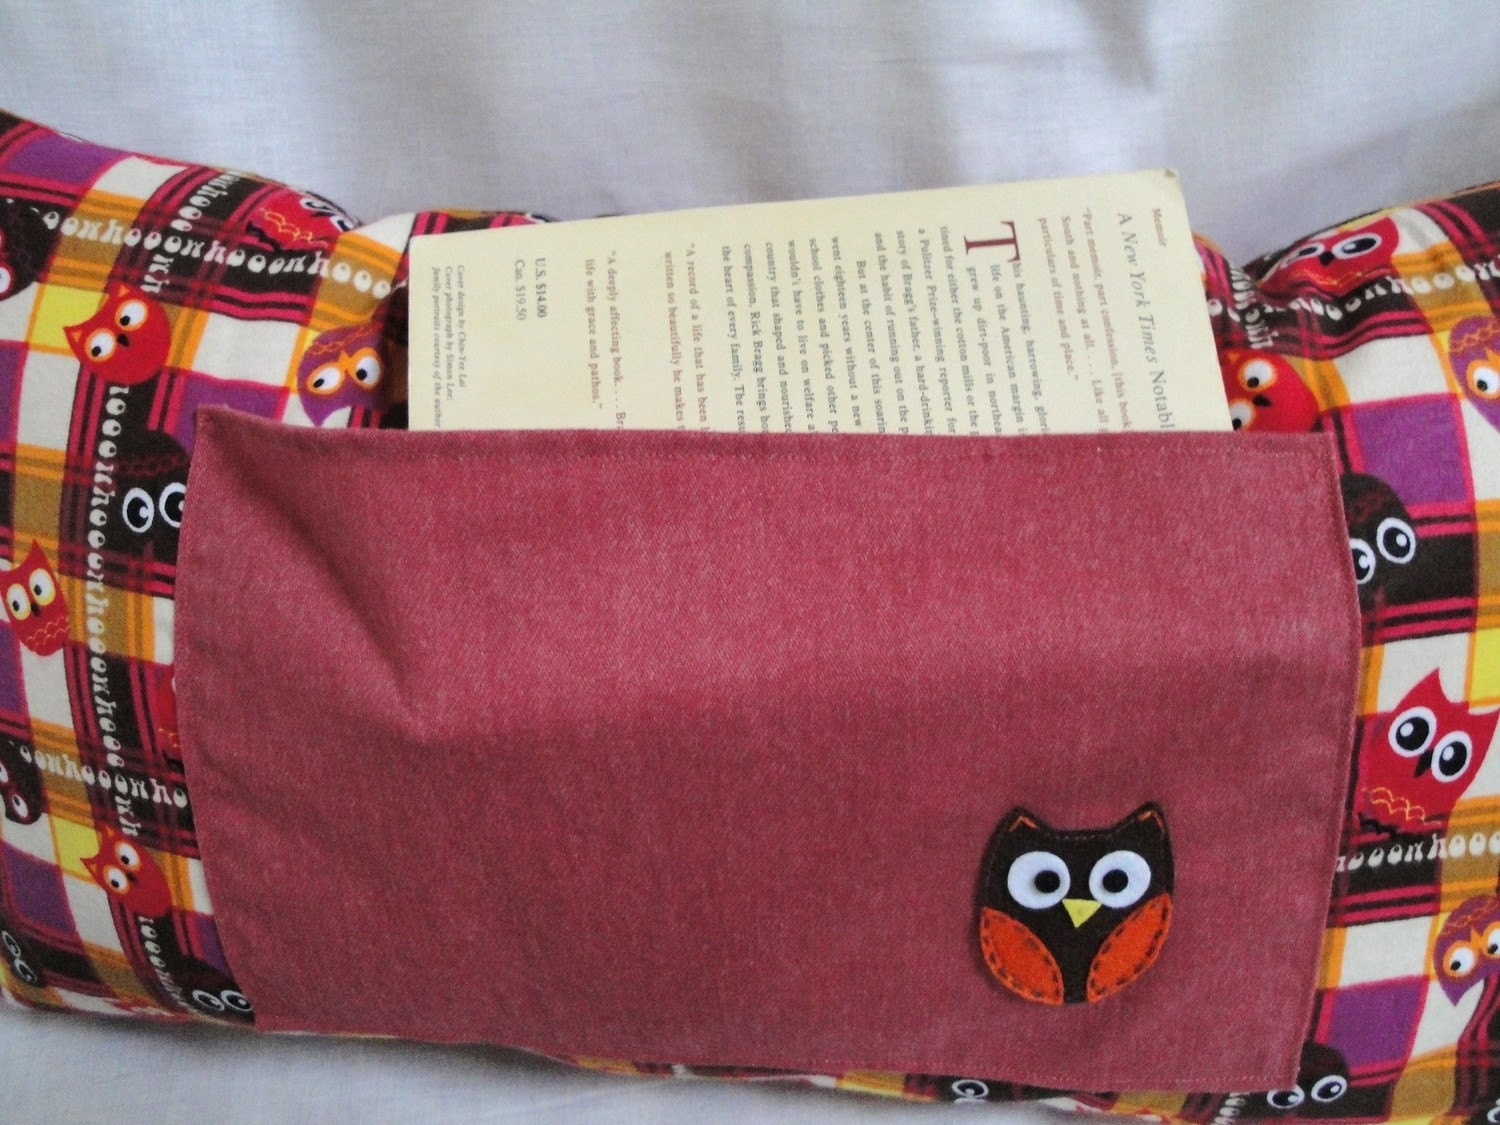 Owl pillow with pocket for book, journal- One of a kind owl themed throw pillow